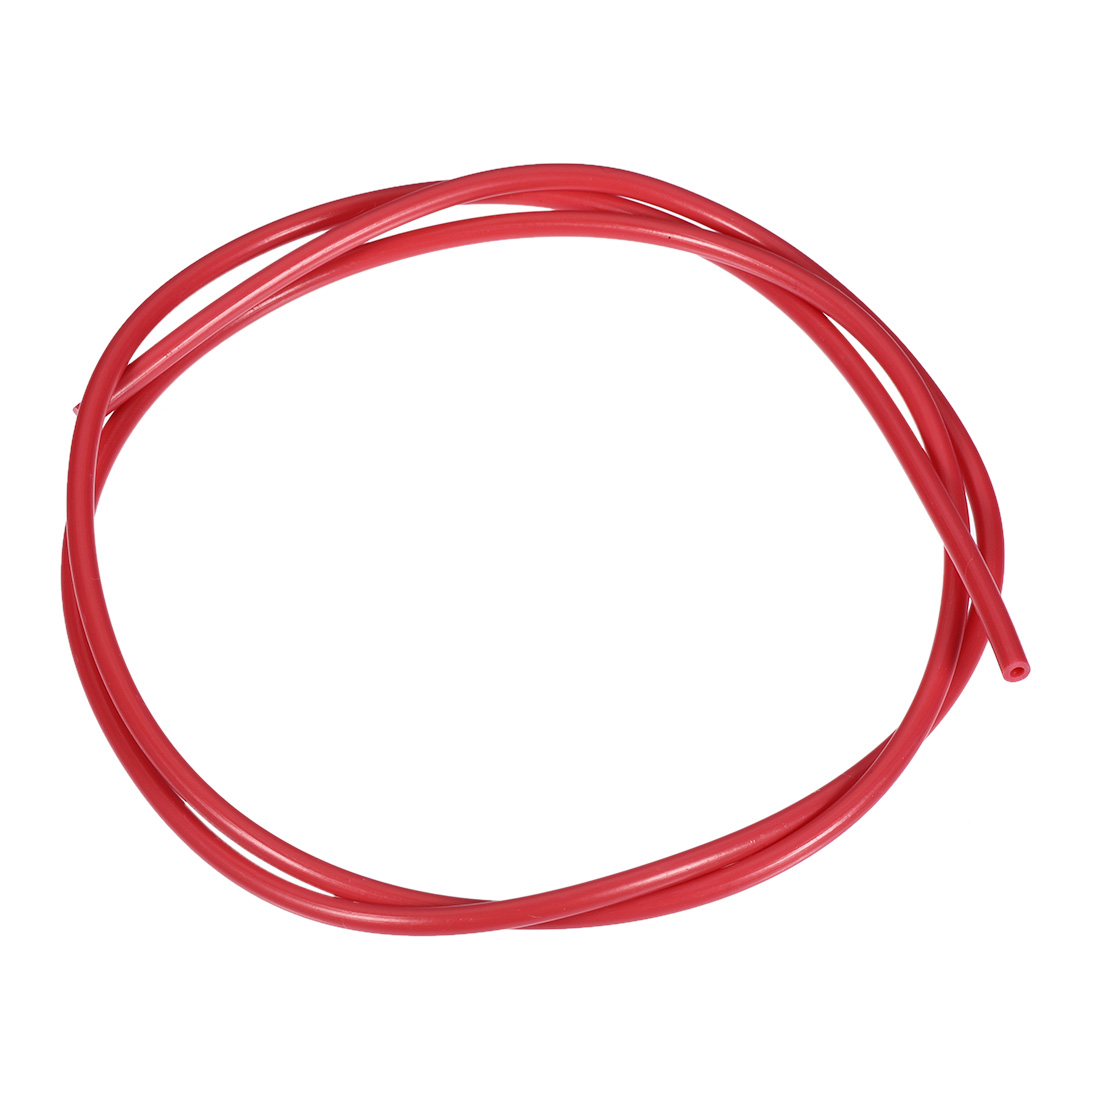 PTFE Tube 3.2Ft - ID 2mm x OD 4mm Fit 1.75 Filament for 3D Printer Red